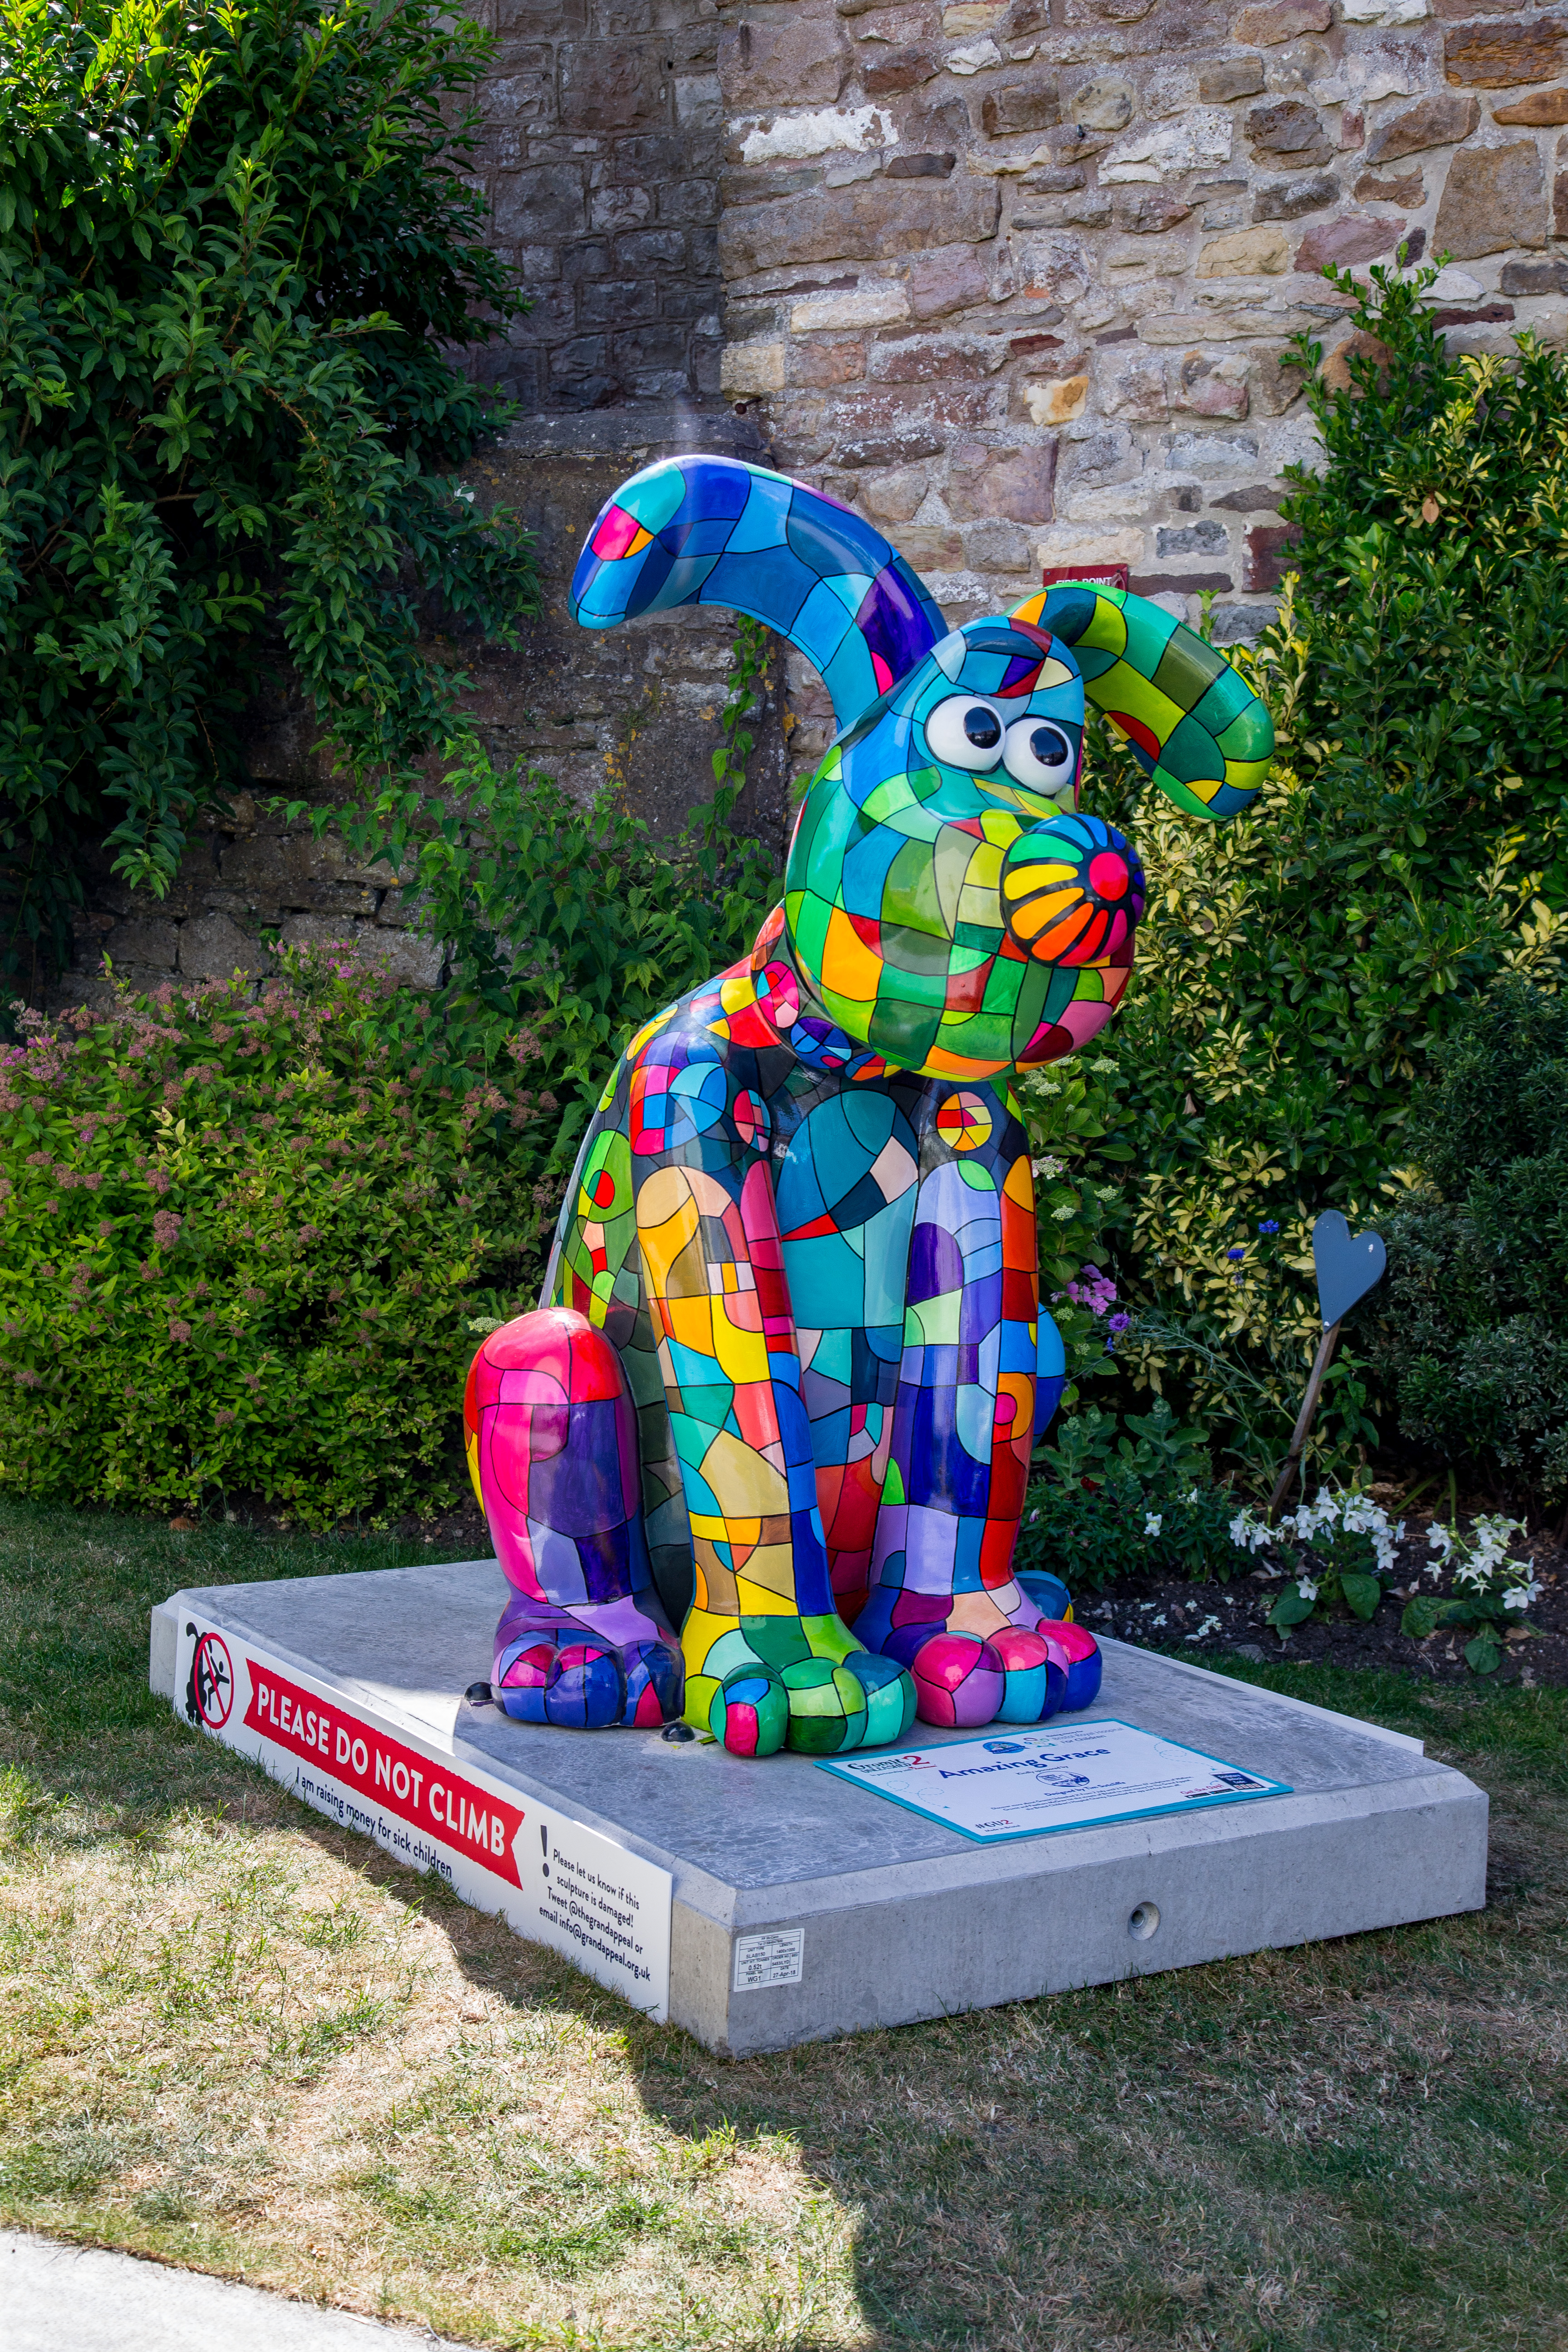 Chipping Sodbury's Gromit has arrived!